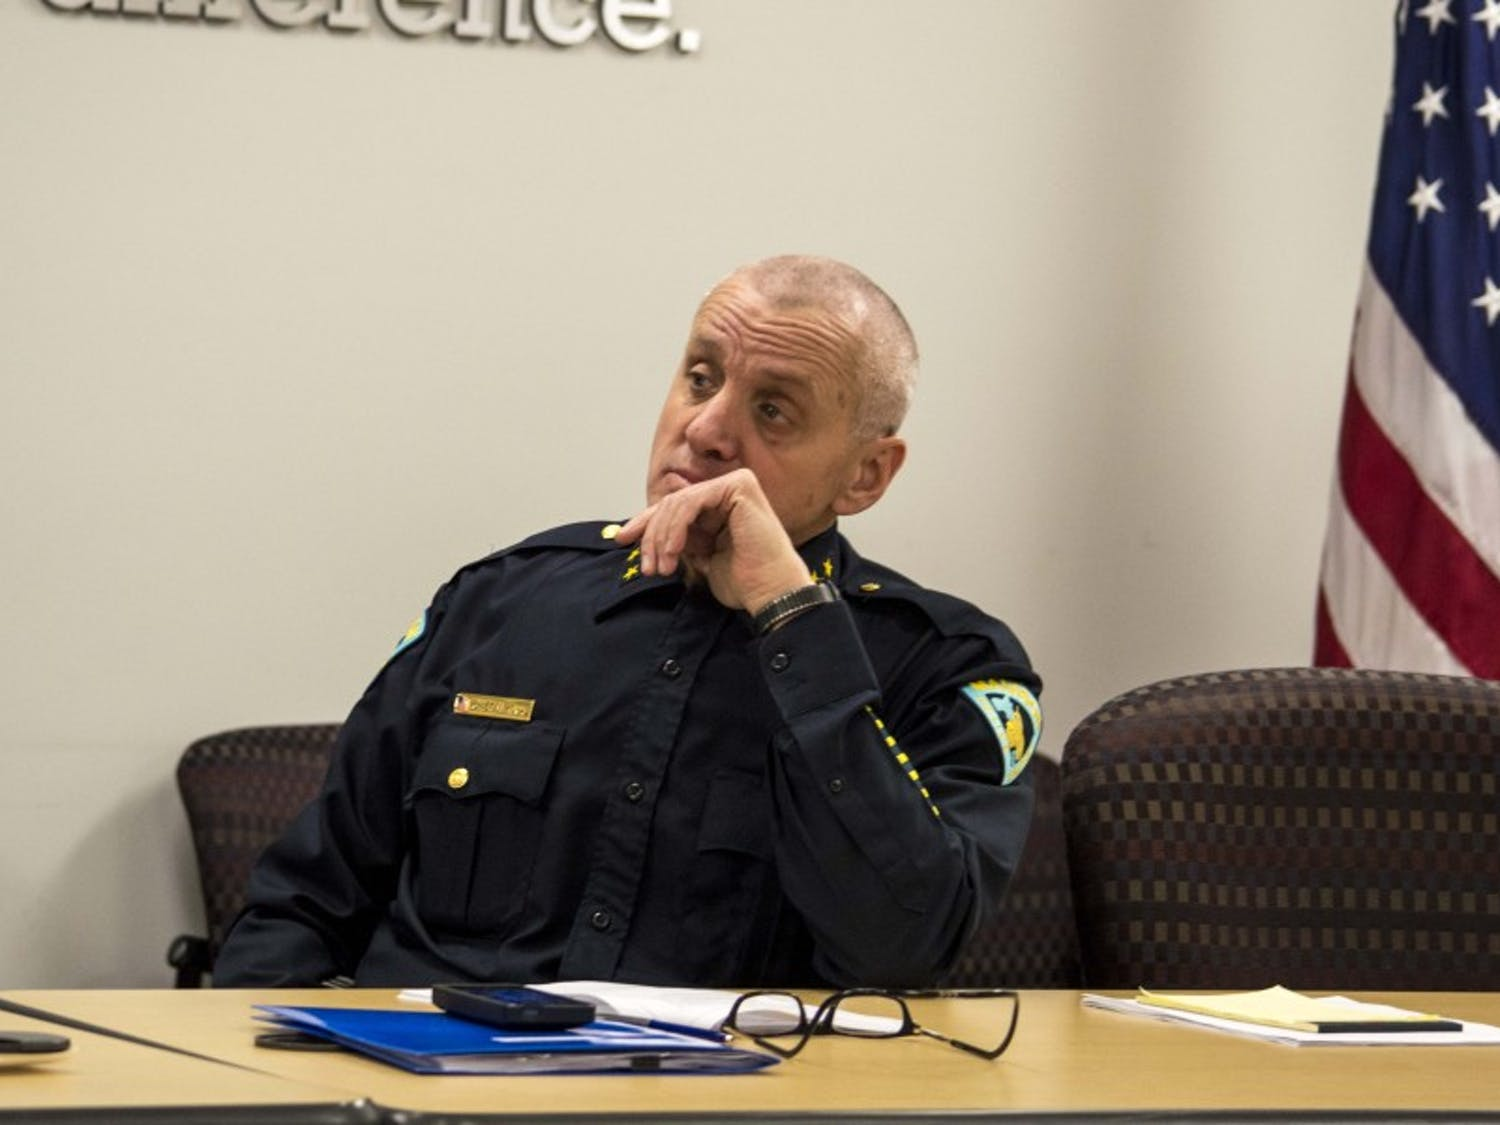 Former Assistant Police Chief Vic Wahl was officially appointed acting chief by Madison's Police and Fire Commission Monday after Mike Koval's resignation.